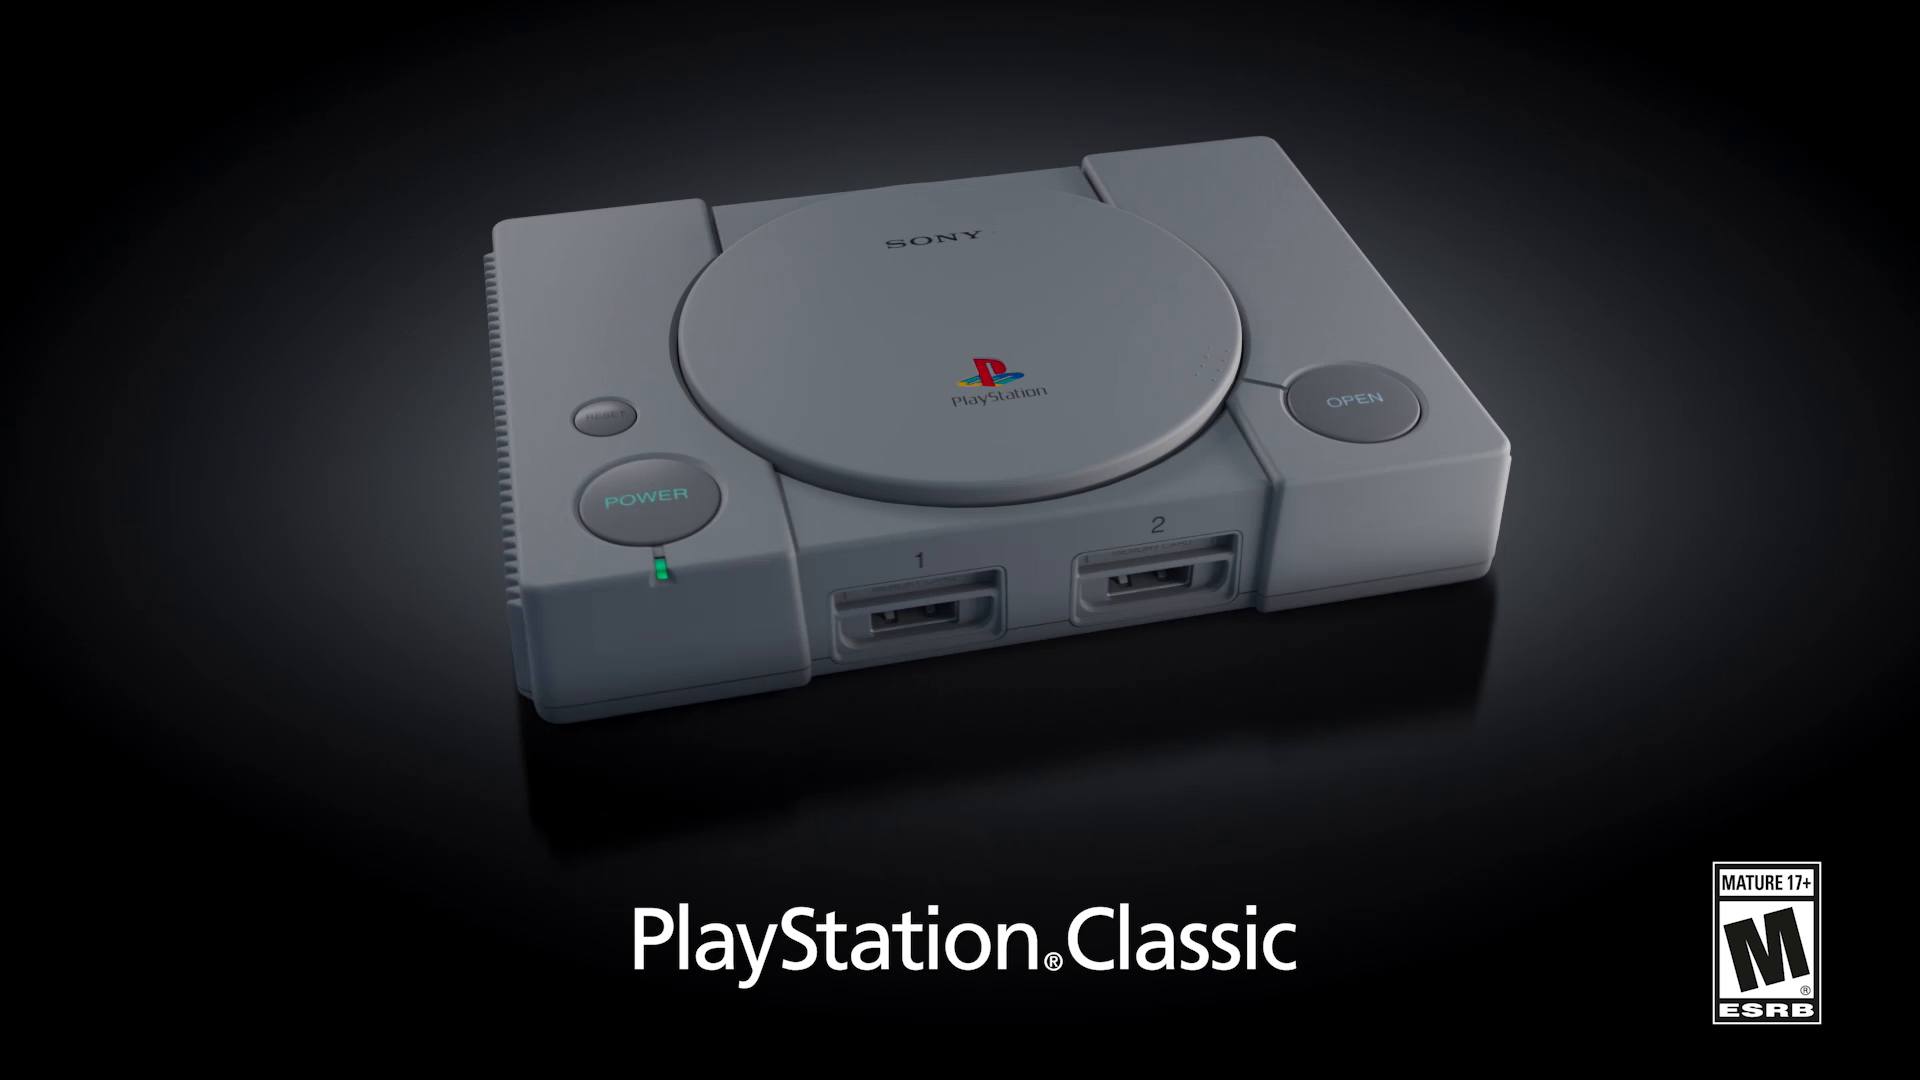 Gmt Auto Sales >> PlayStation Classic is down to $20 on GameStop - VG247